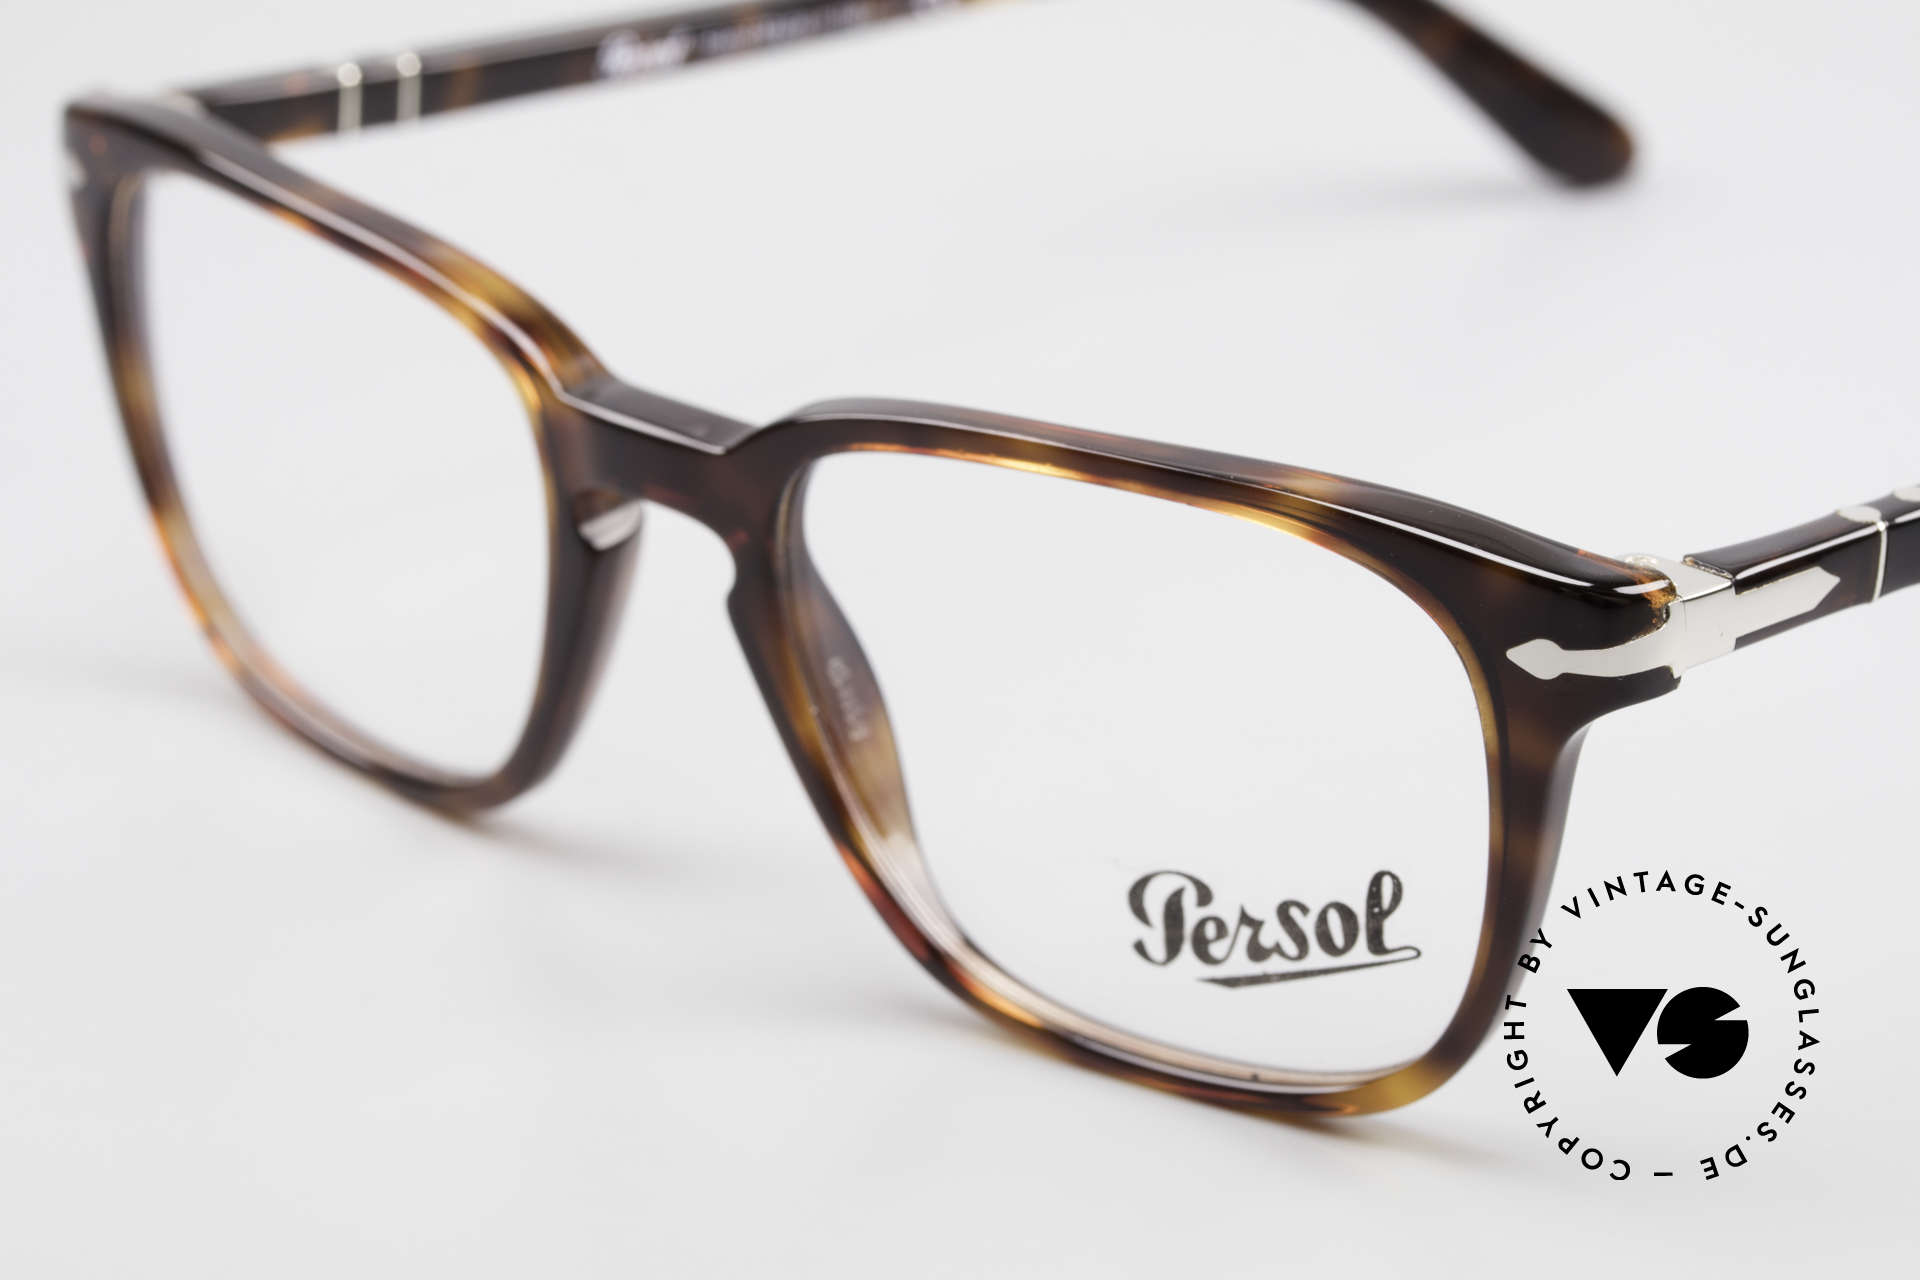 Persol 3117 Square Panto Unisex Glasses, unworn (like all our classic PERSOL eyeglasses), Made for Men and Women